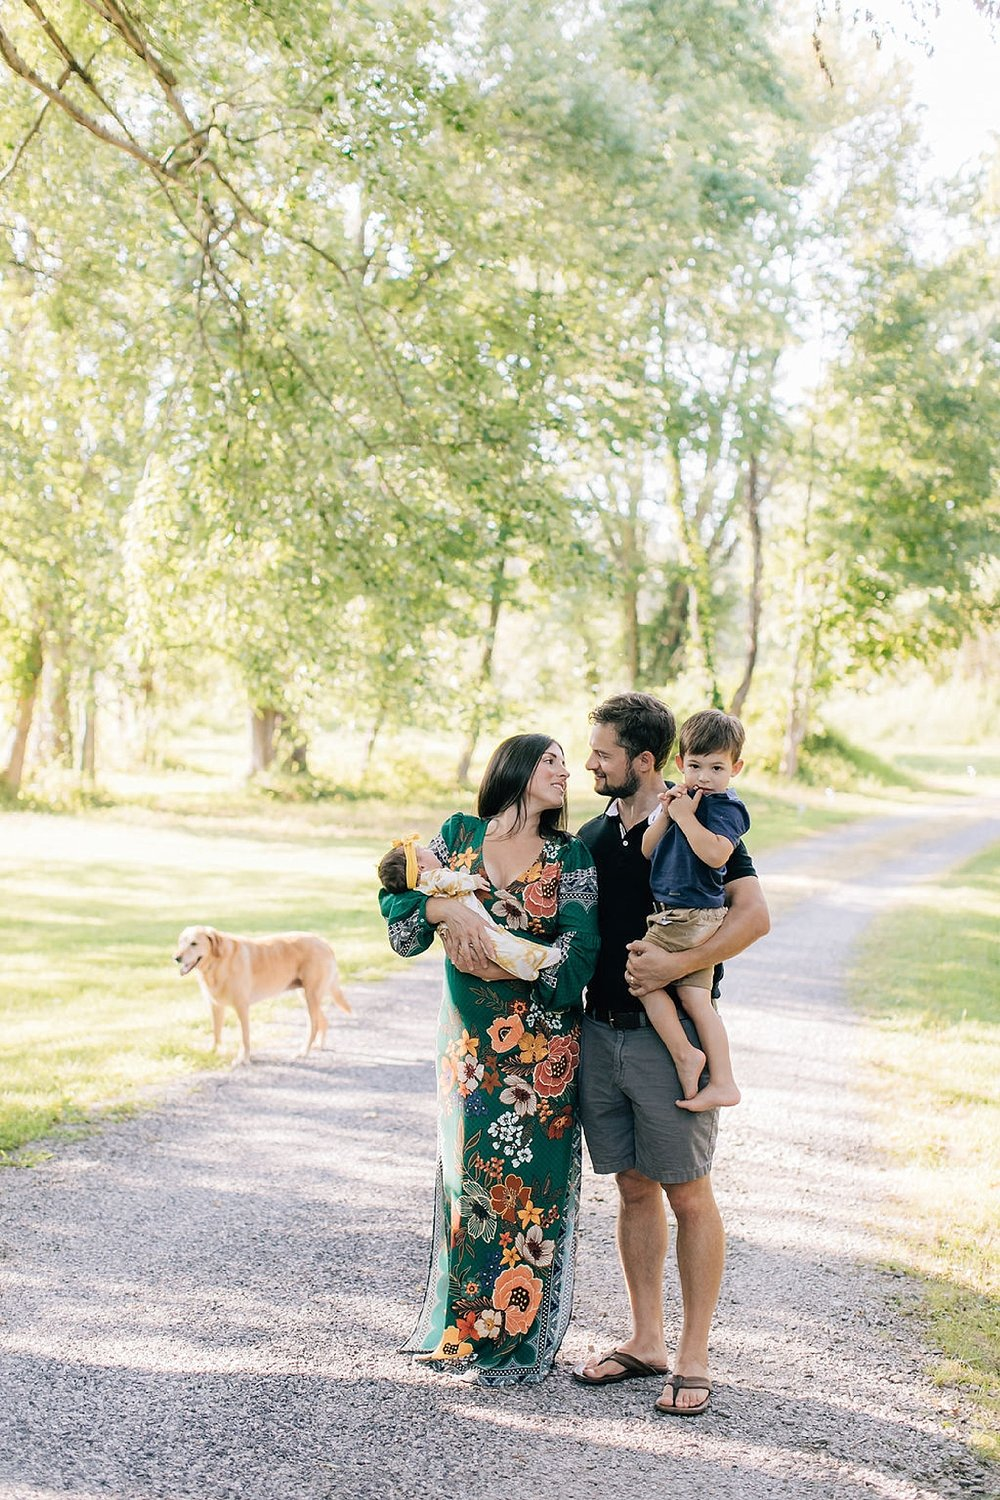 A Day In the Life Family Session by Magdalena Studios_0011.jpg